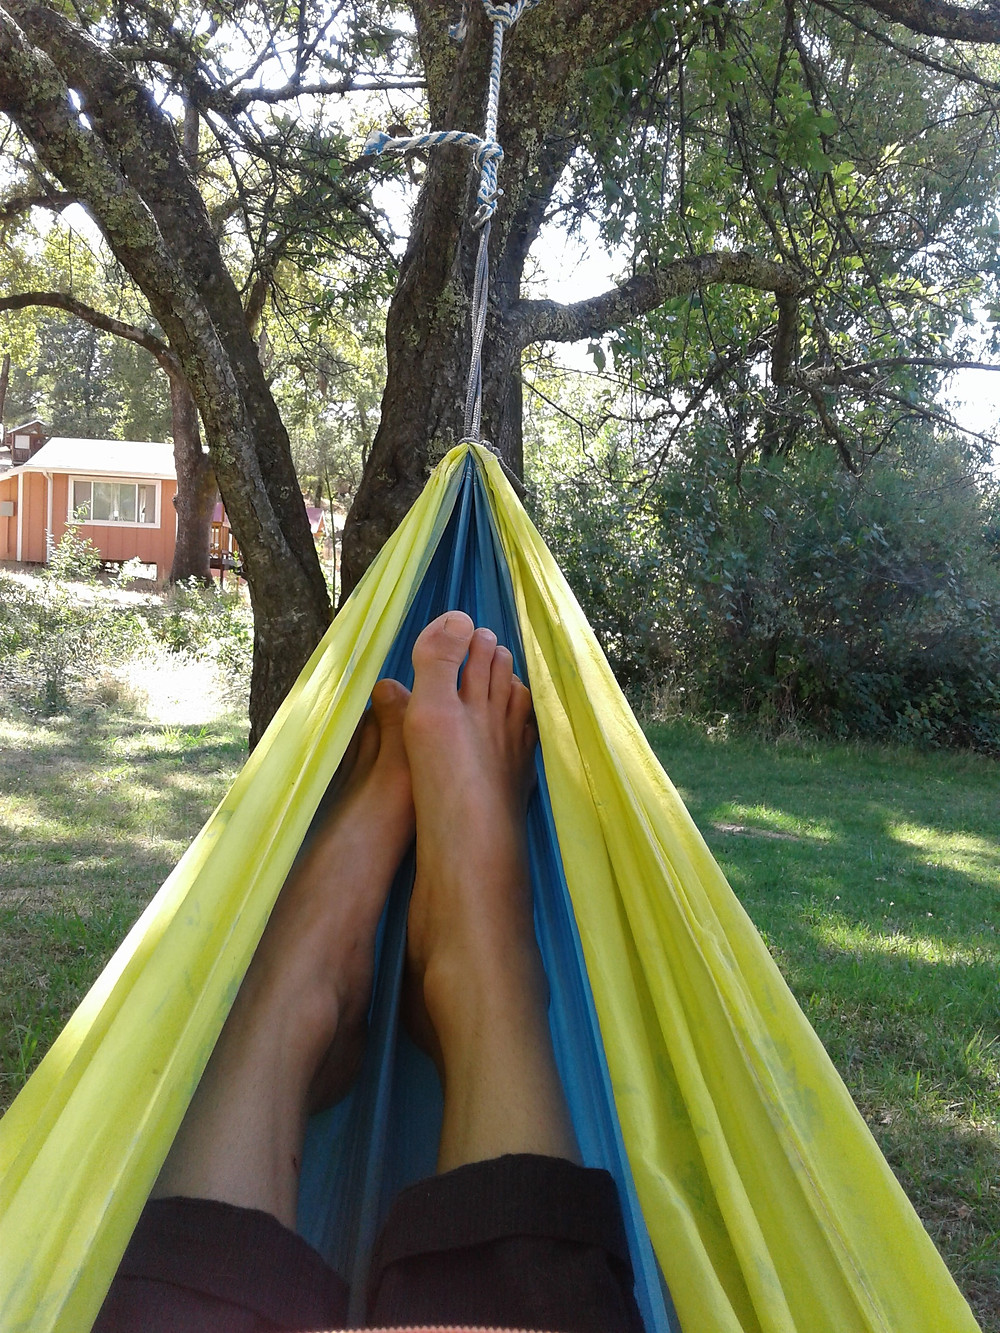 Reading or napping in the hammocks was also a post Bhakti yoga practice. Yoga Nidra